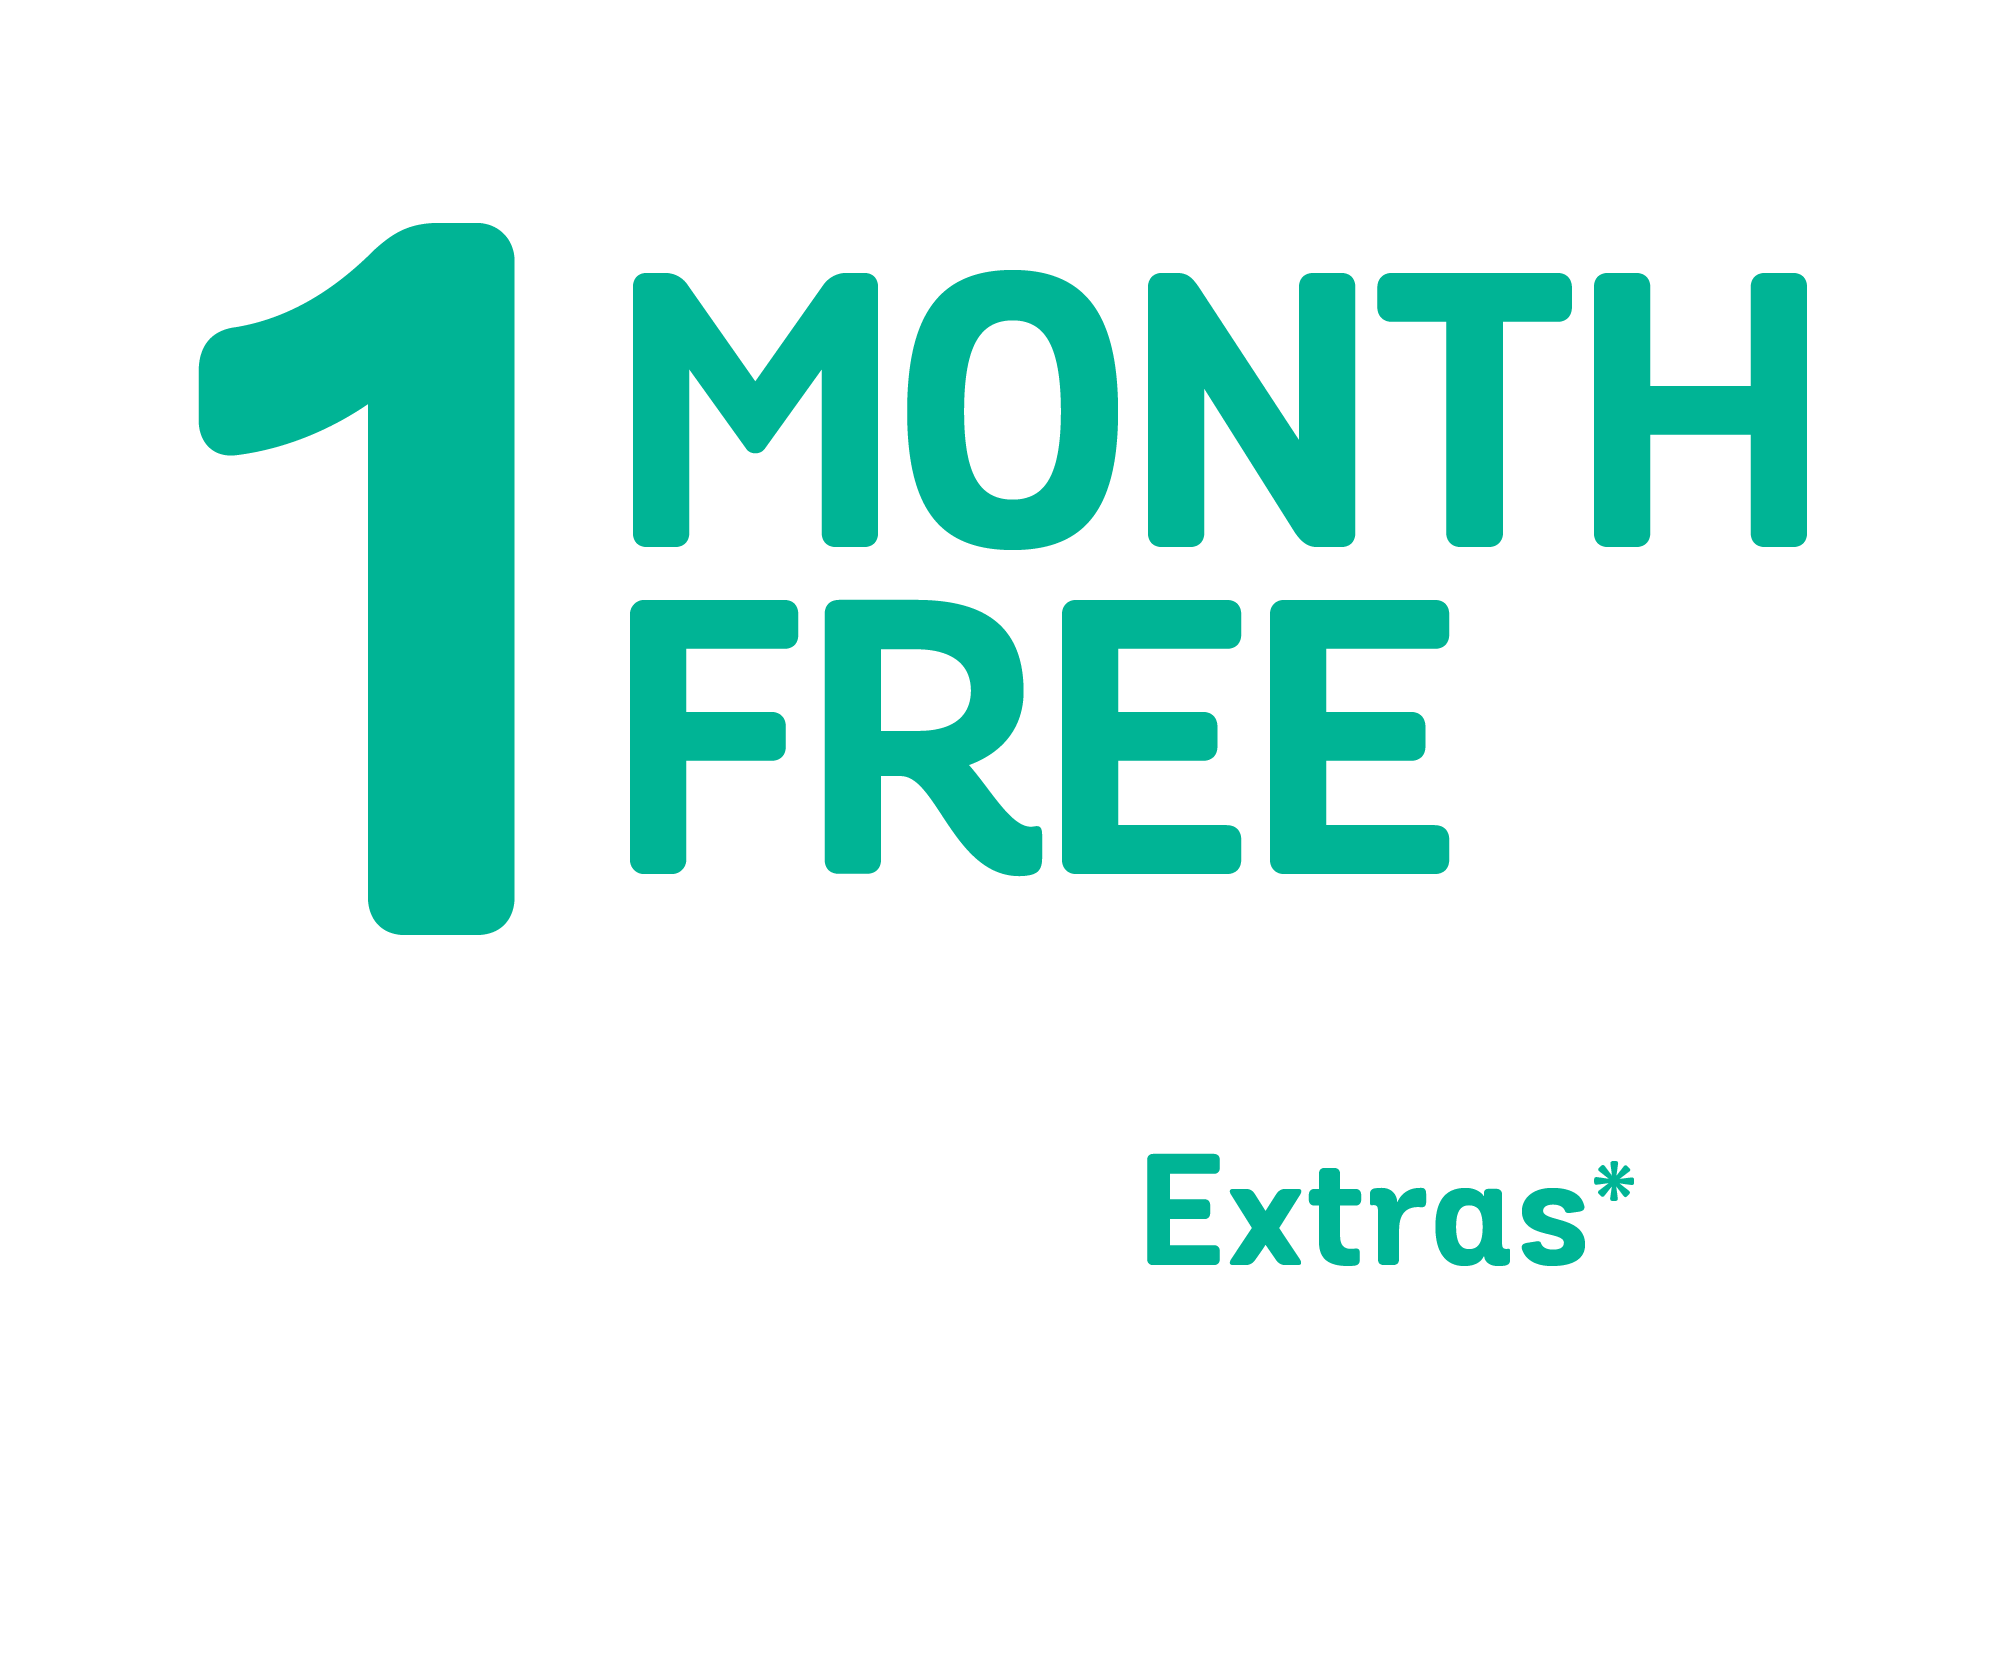 1 month free icon